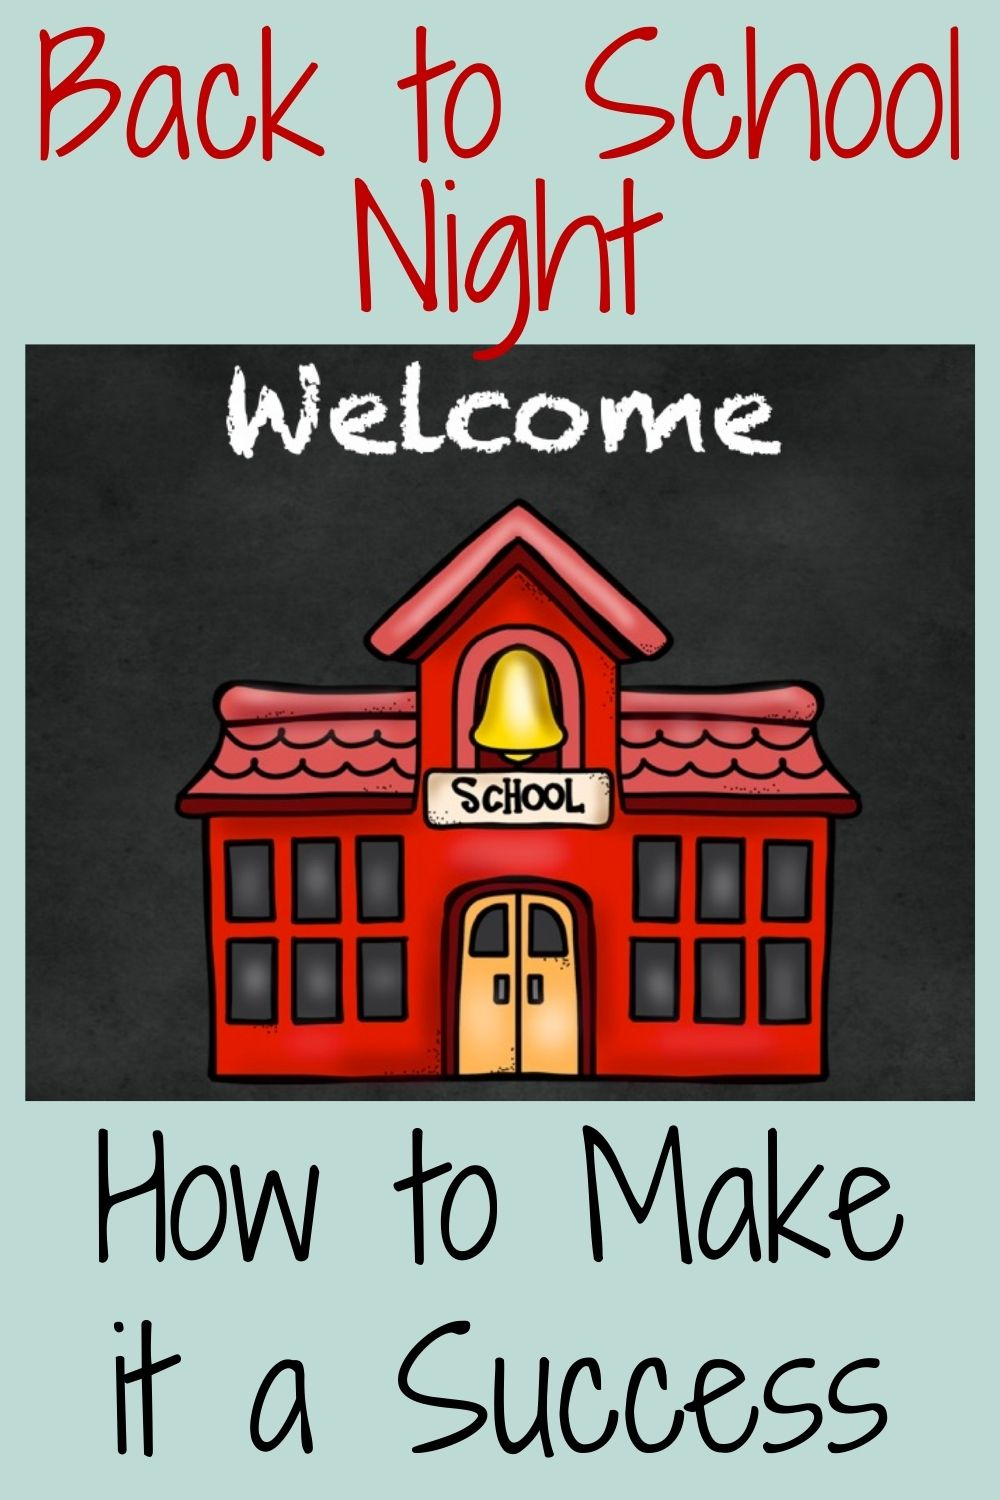 How to Have a Successful Back to School Night